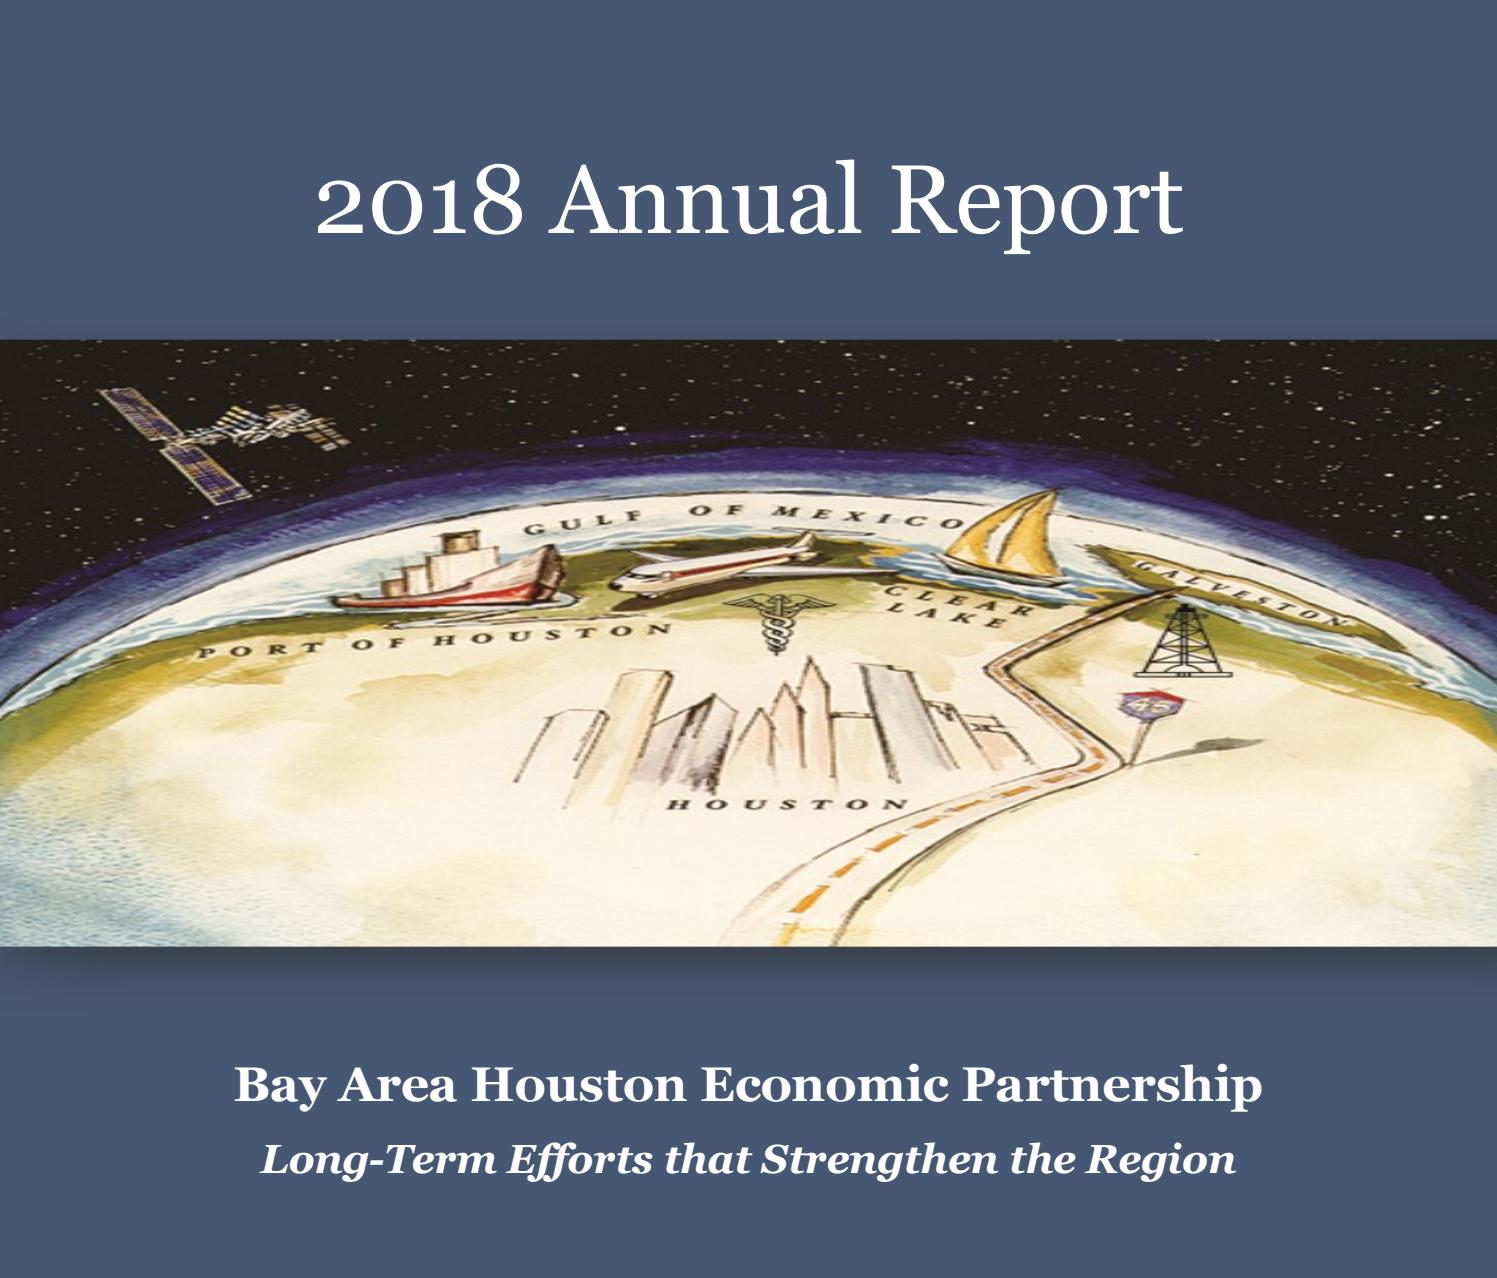 Annual Report 2018 by Bay Area Houston Economic Partnership - issuu